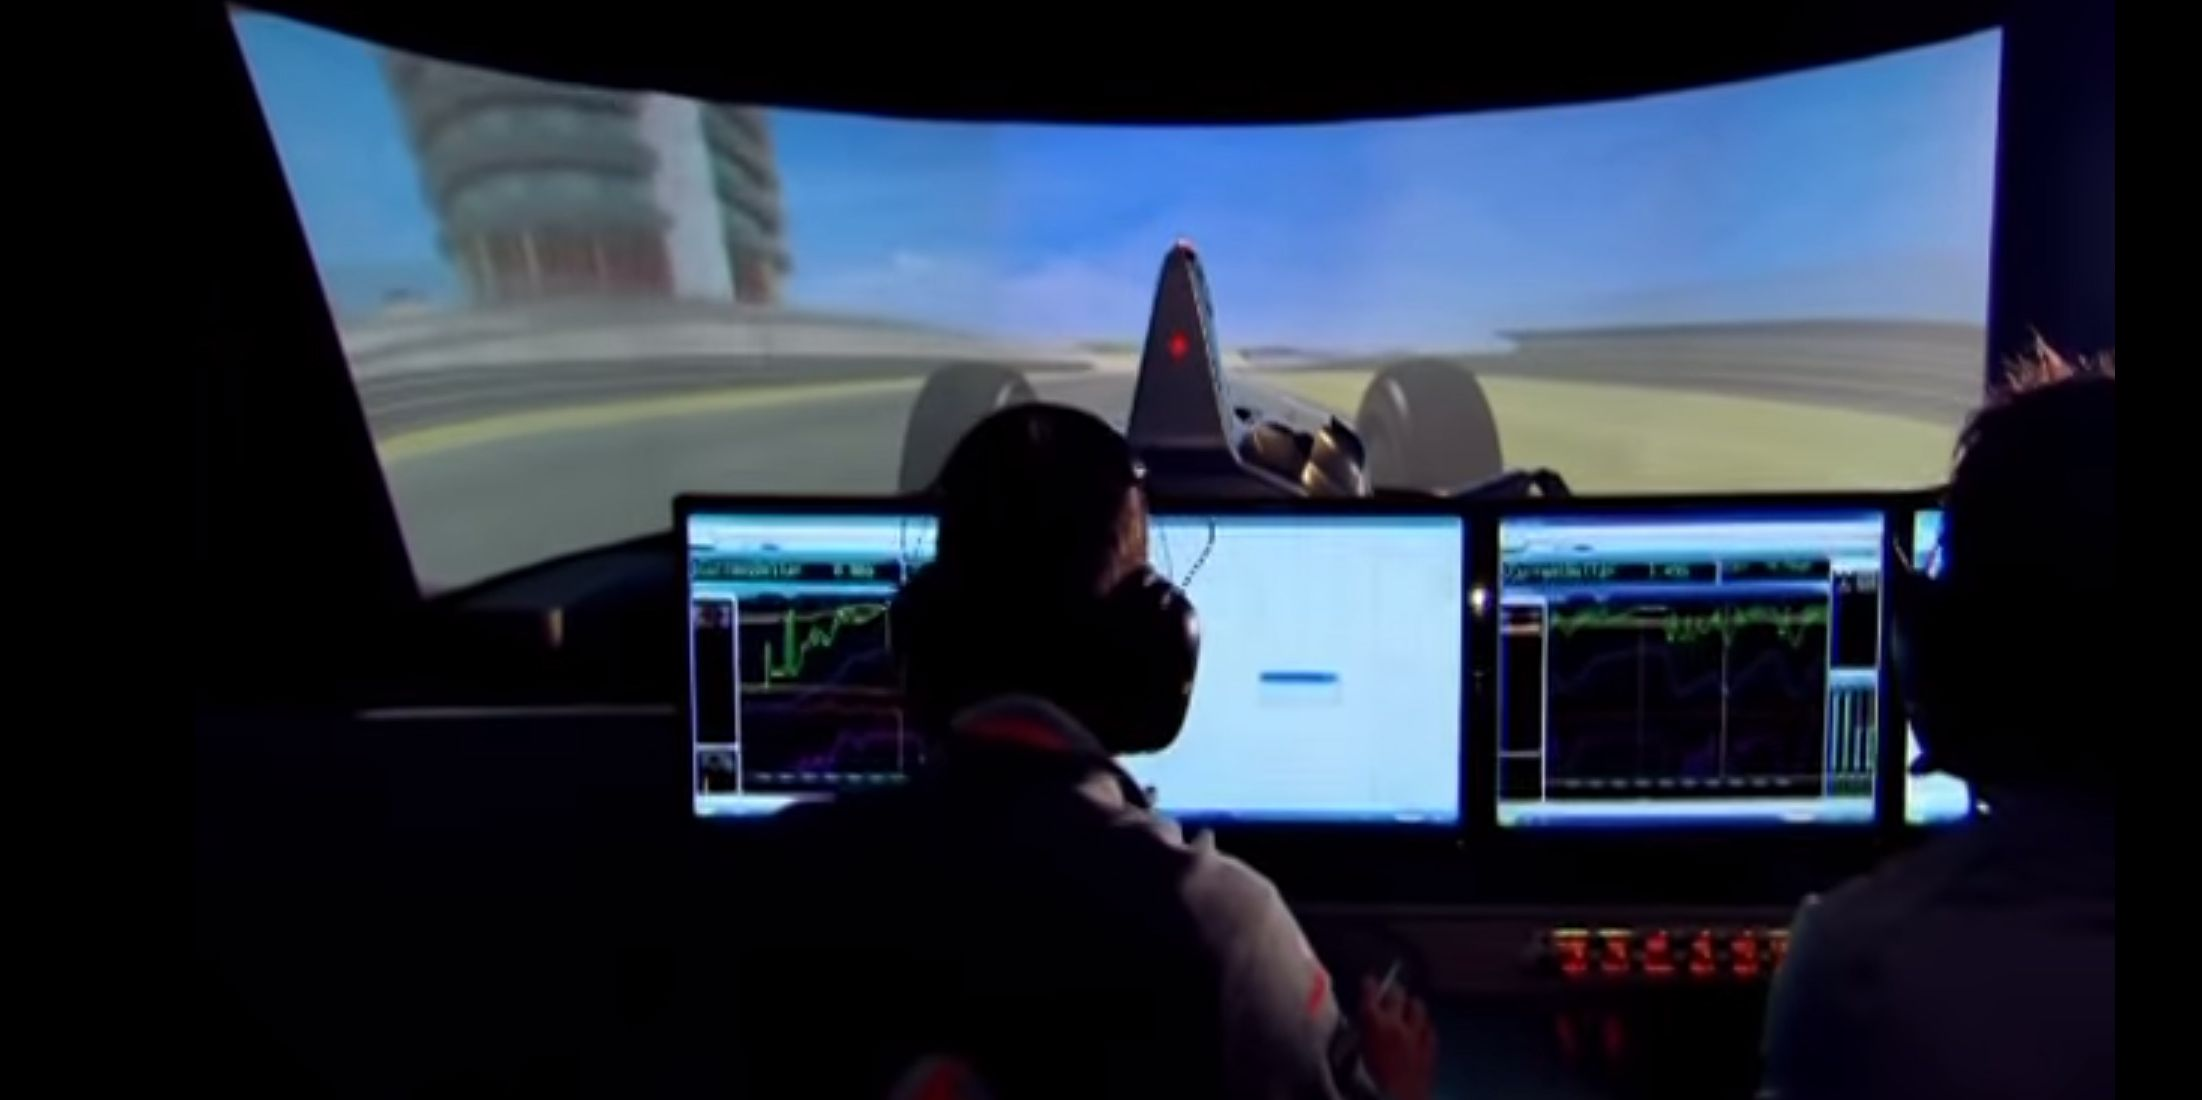 McLaren's Incredible Formula 1 Simulator as Demonstrated by